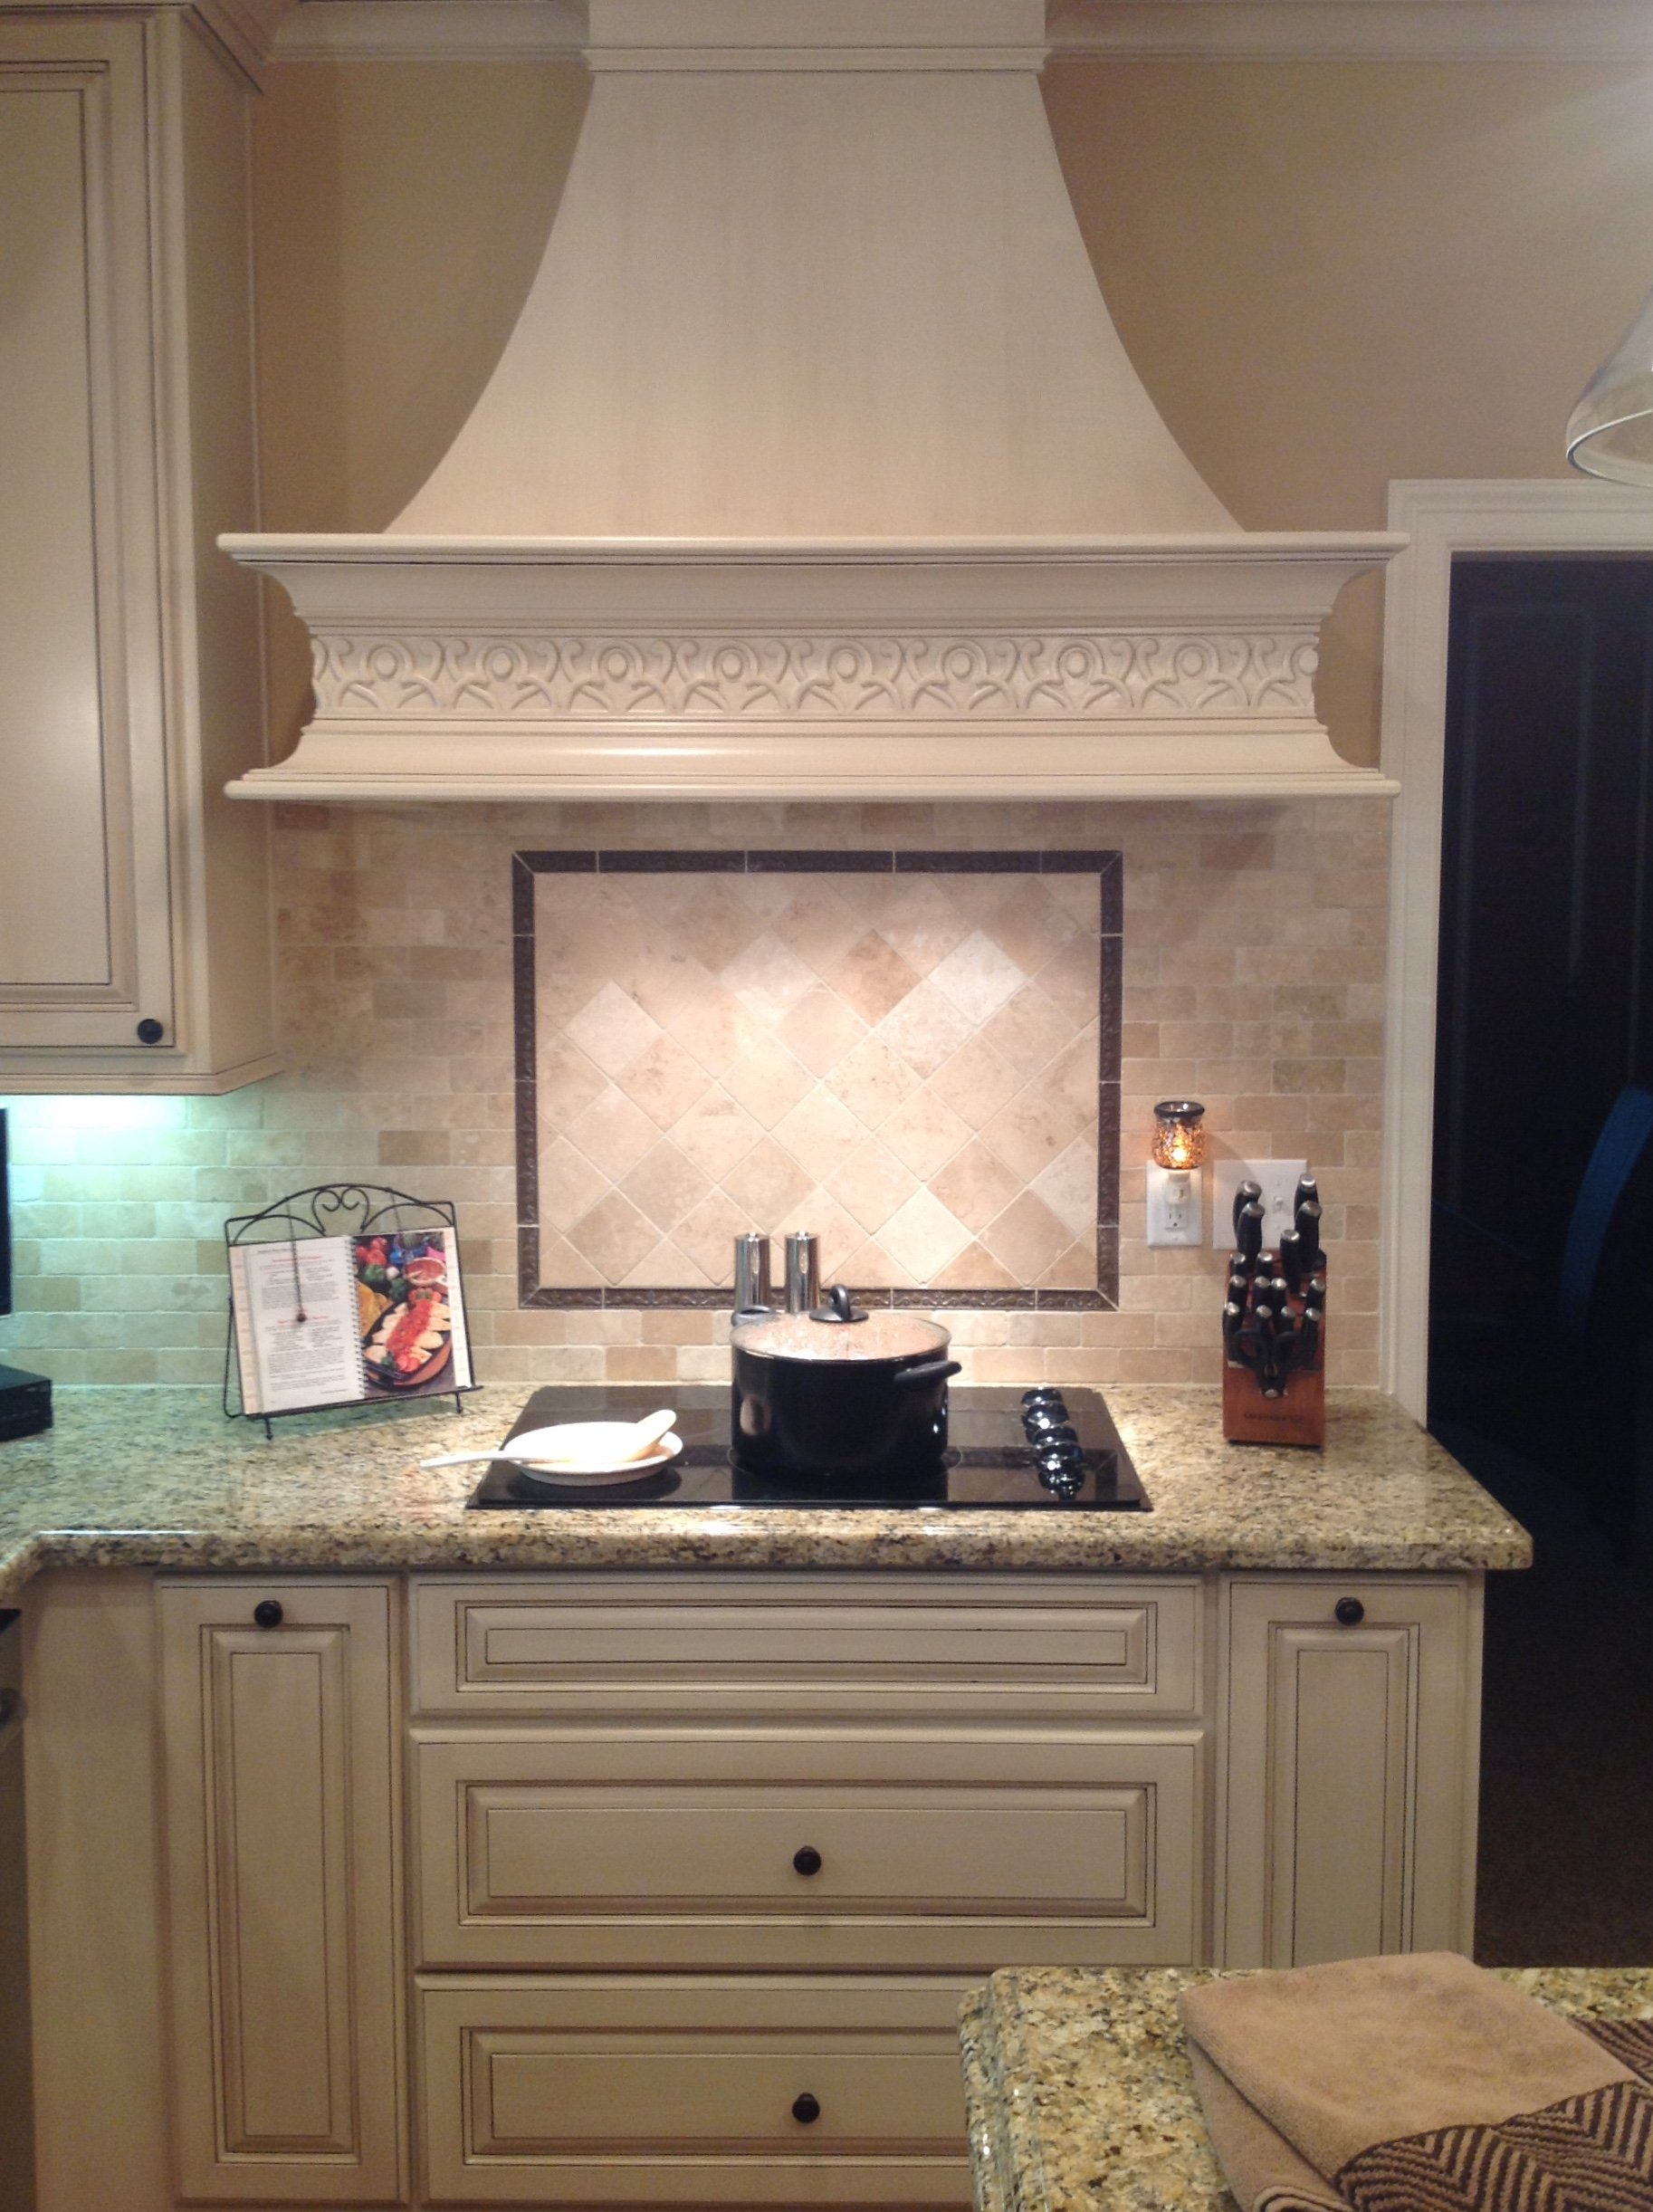 Electric stove and exhaust hood